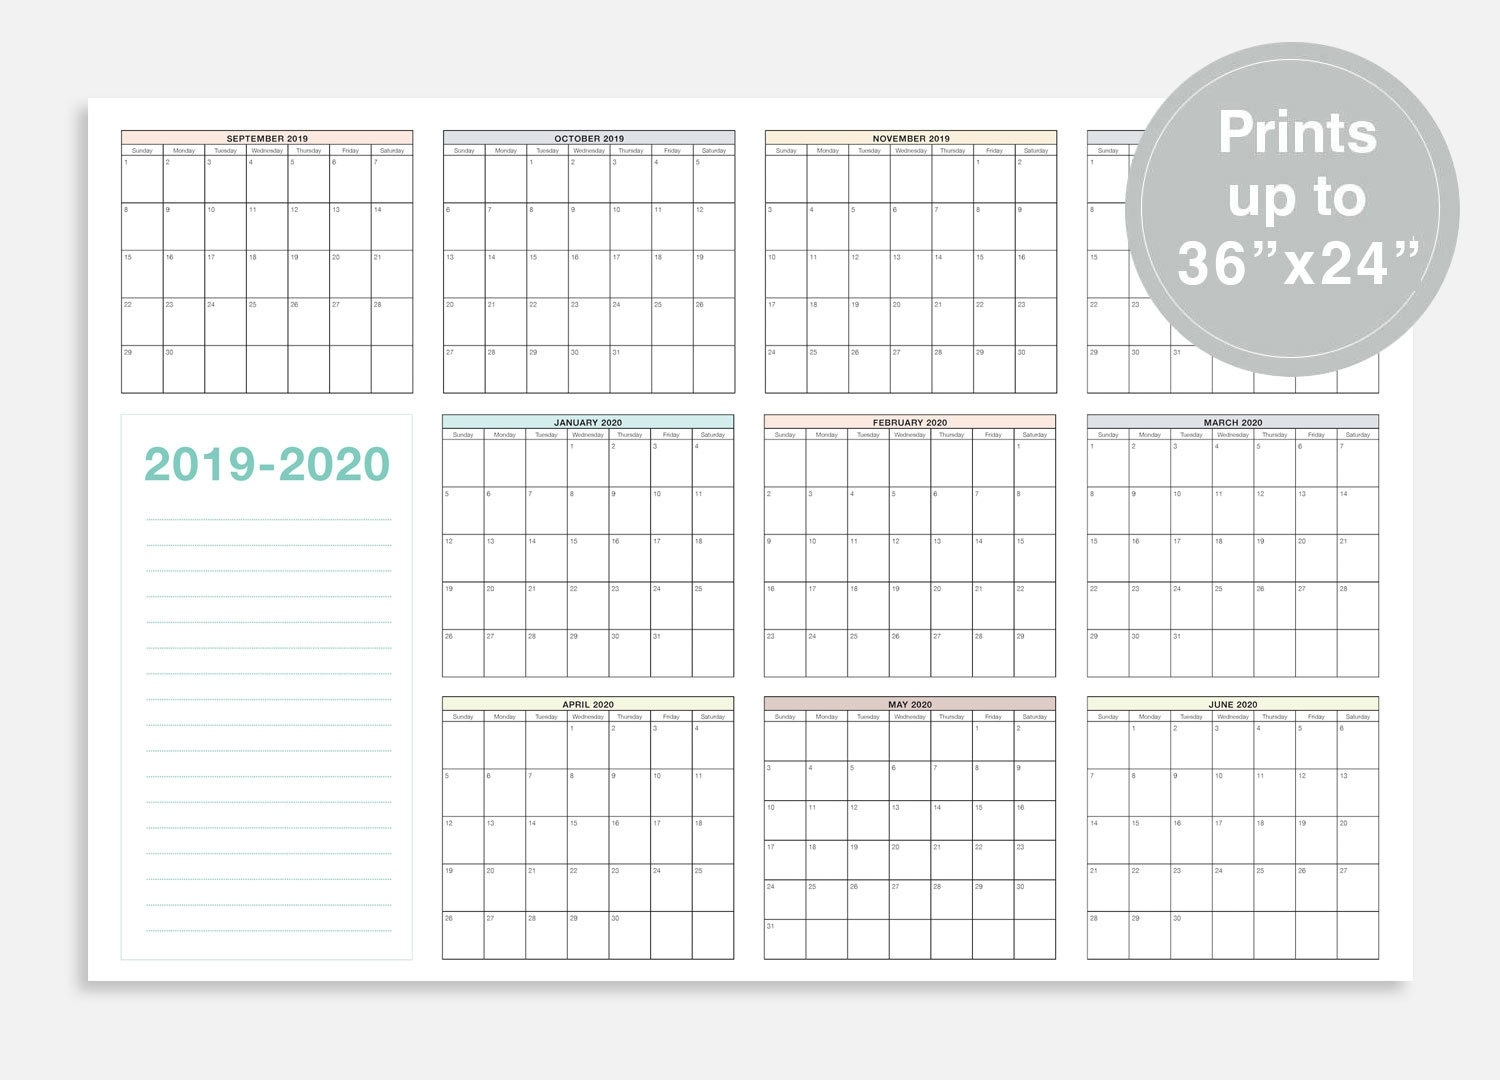 "2019-2020 School Calendar, September 2019 - June 2020 School Planner,  36X24"" School Wall Calendar, At A Glance Calendar, School Planner_School Calendar Western Cape 2020"